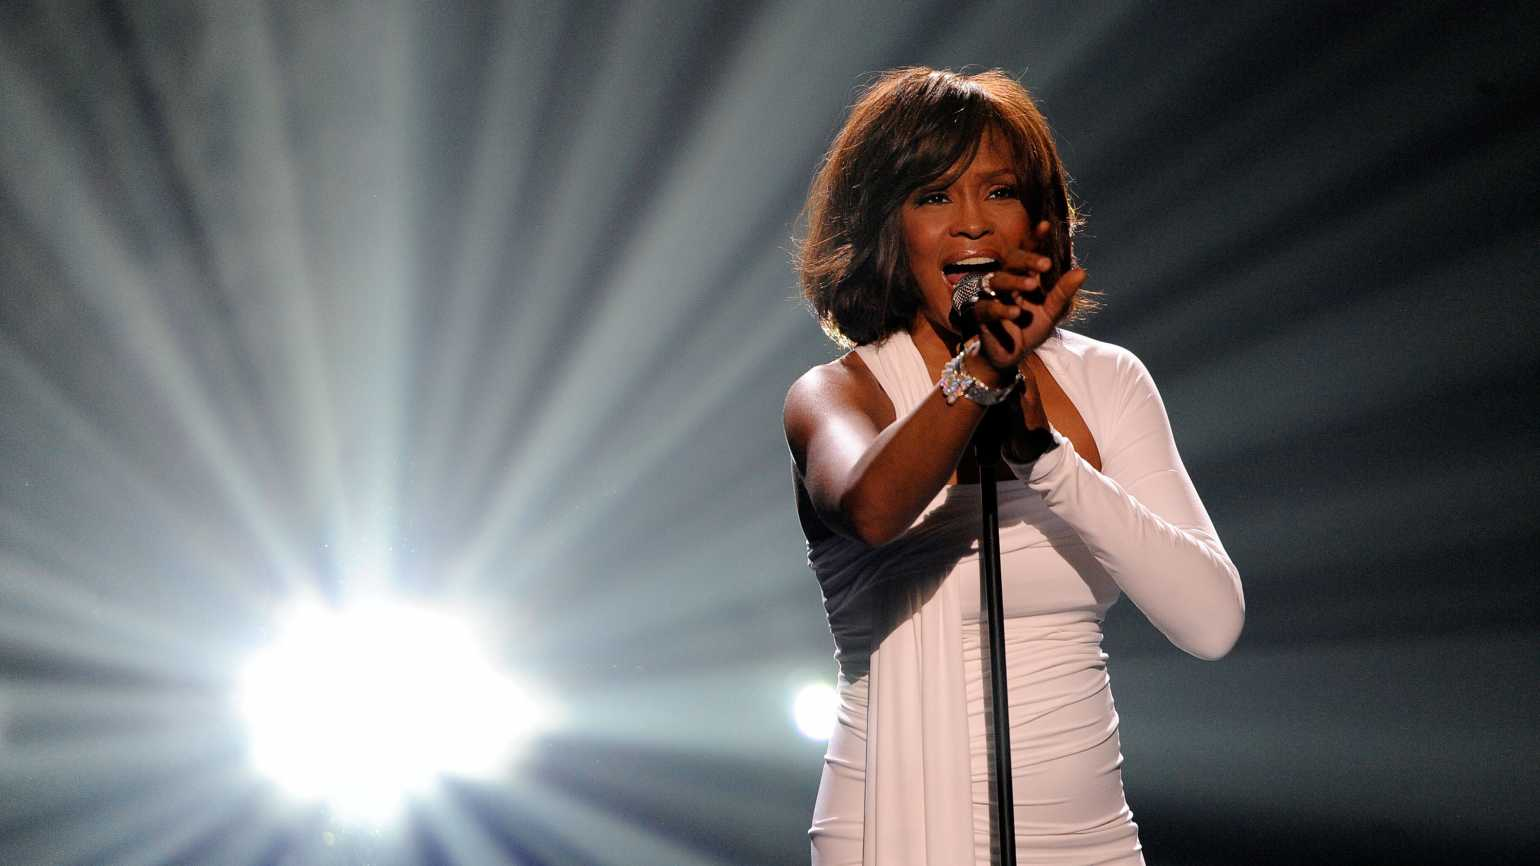 whitney houston, getty images